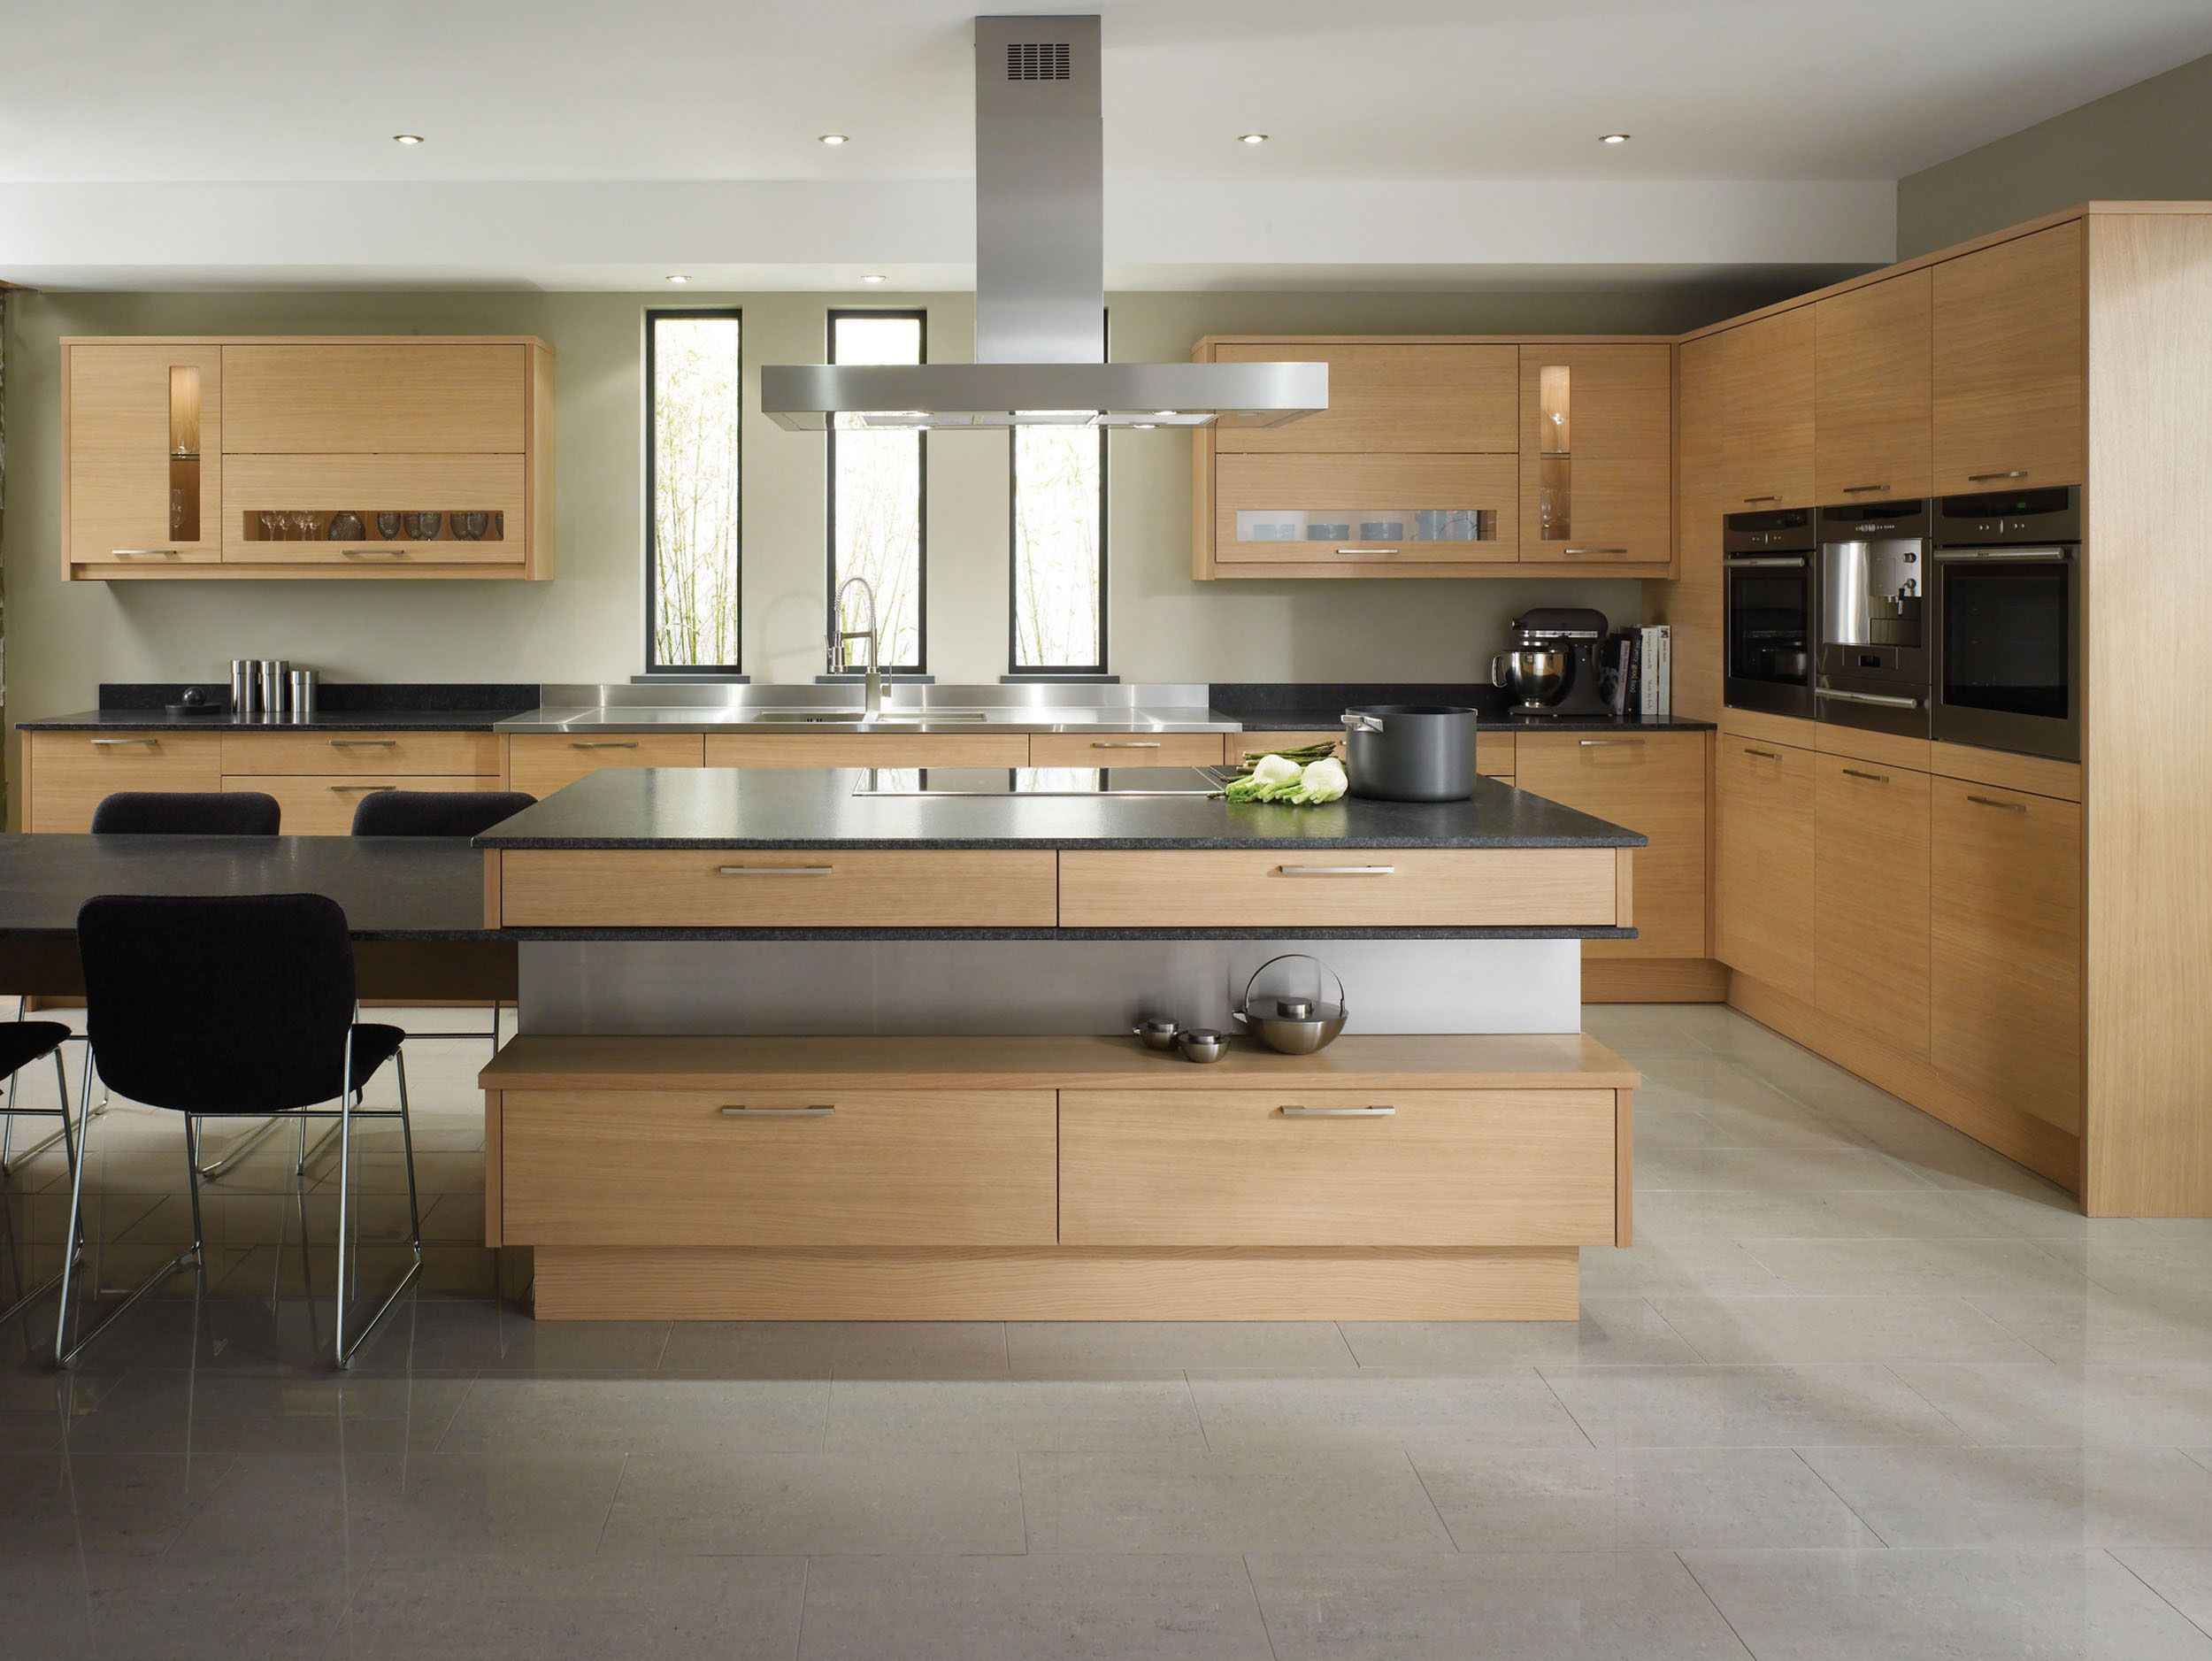 Images Of Modern Kitchens 25 Contemporary Kitchen Design Inspiration Contemporary